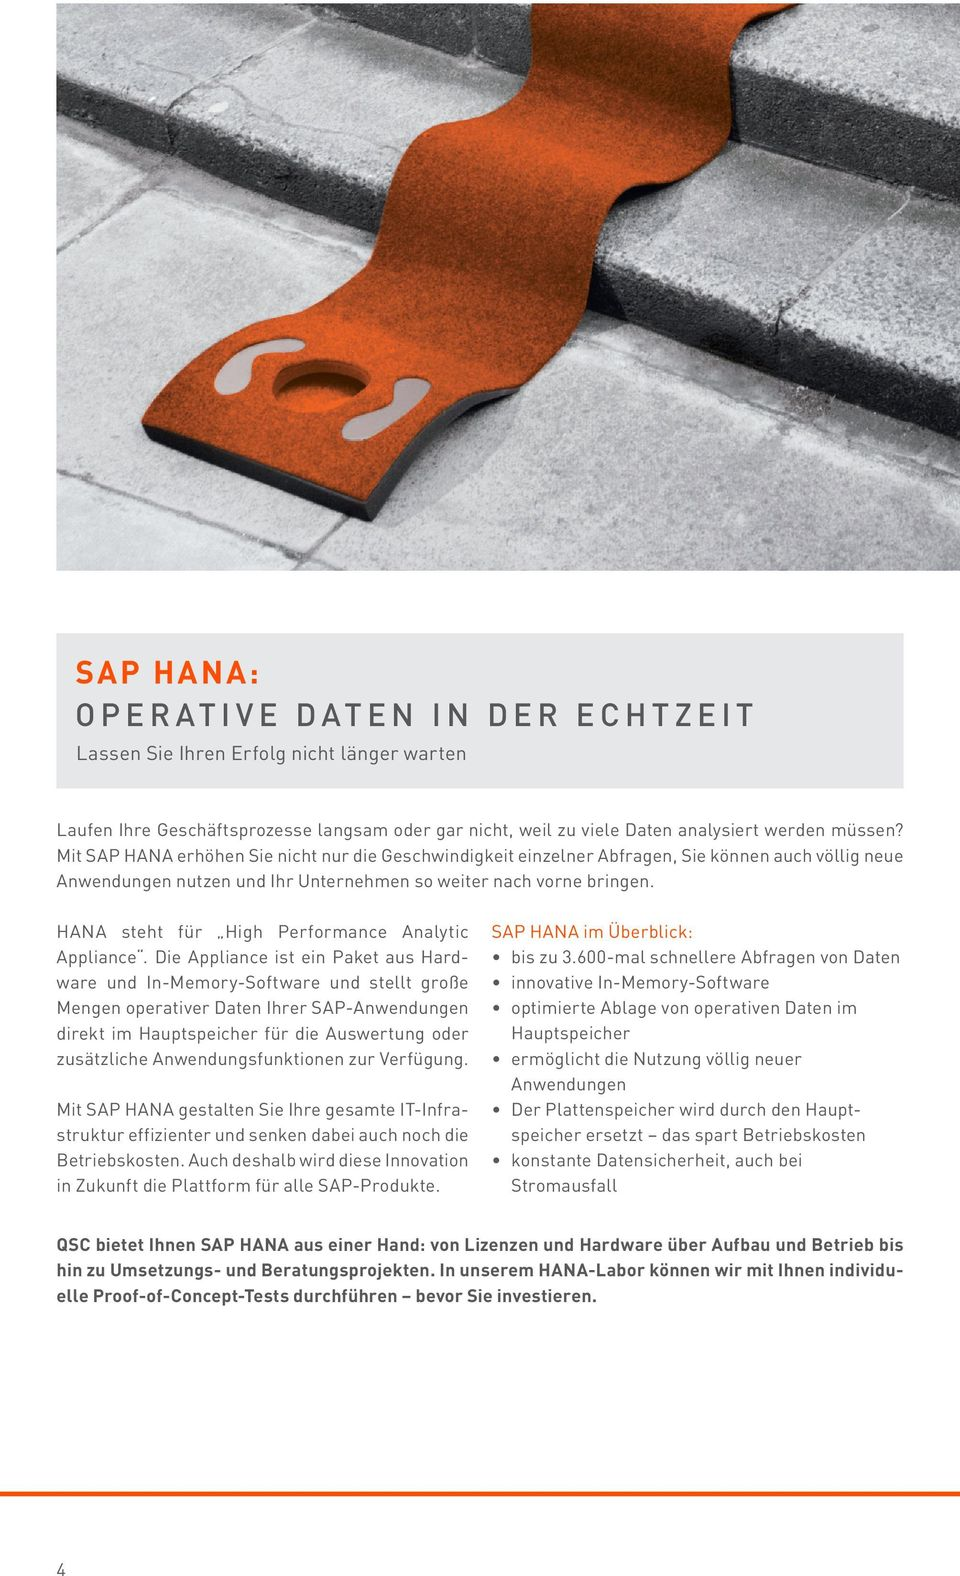 HANA steht für High Performance Analytic Appliance.